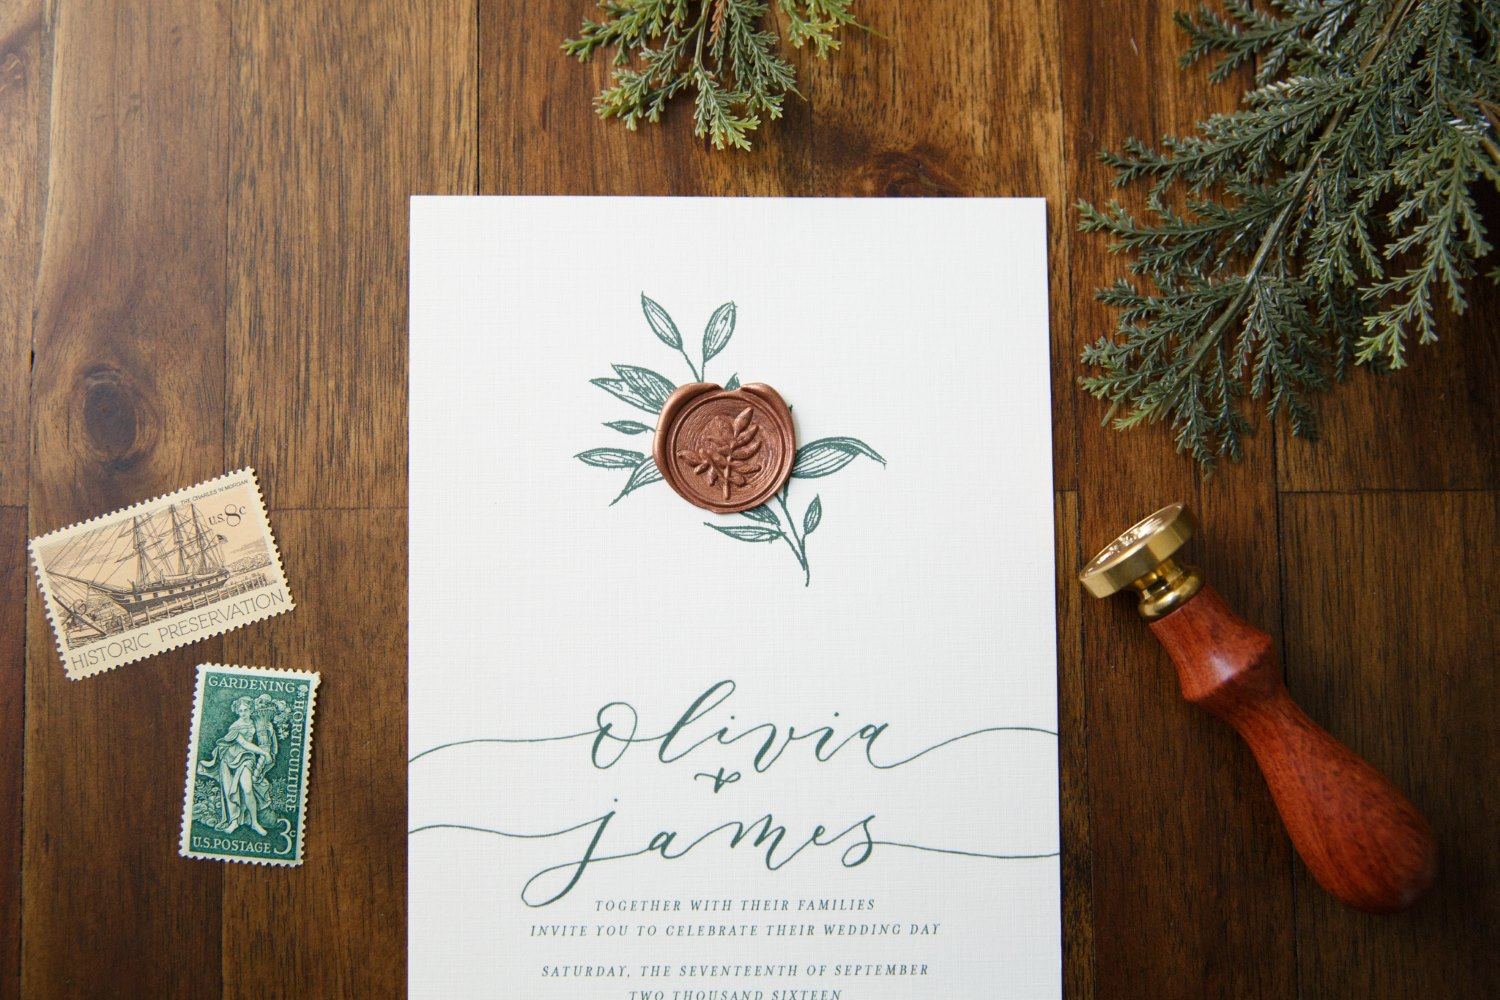 EARTHY ROMANCE WEDDING INVITATIONS PHOTO 2